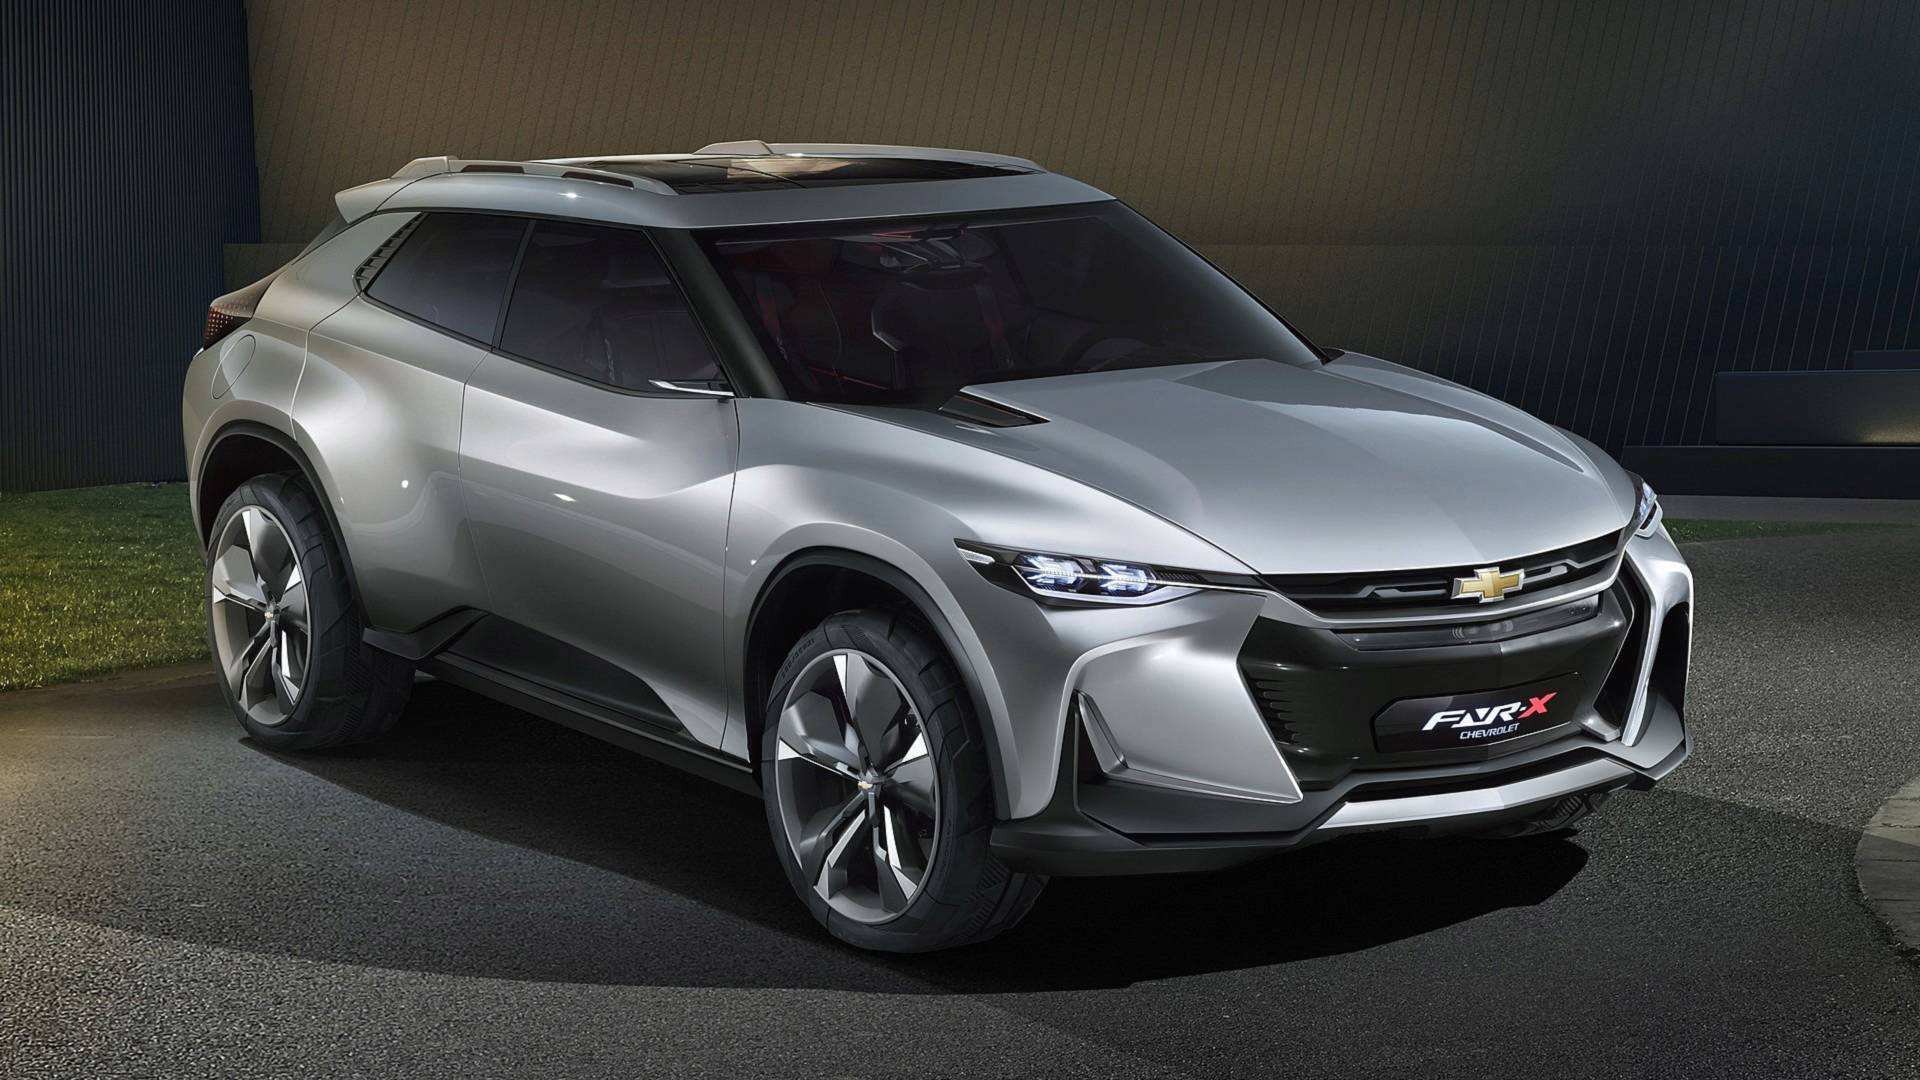 28 Concept of Hyundai Upcoming Suv 2020 Model with Hyundai Upcoming Suv 2020